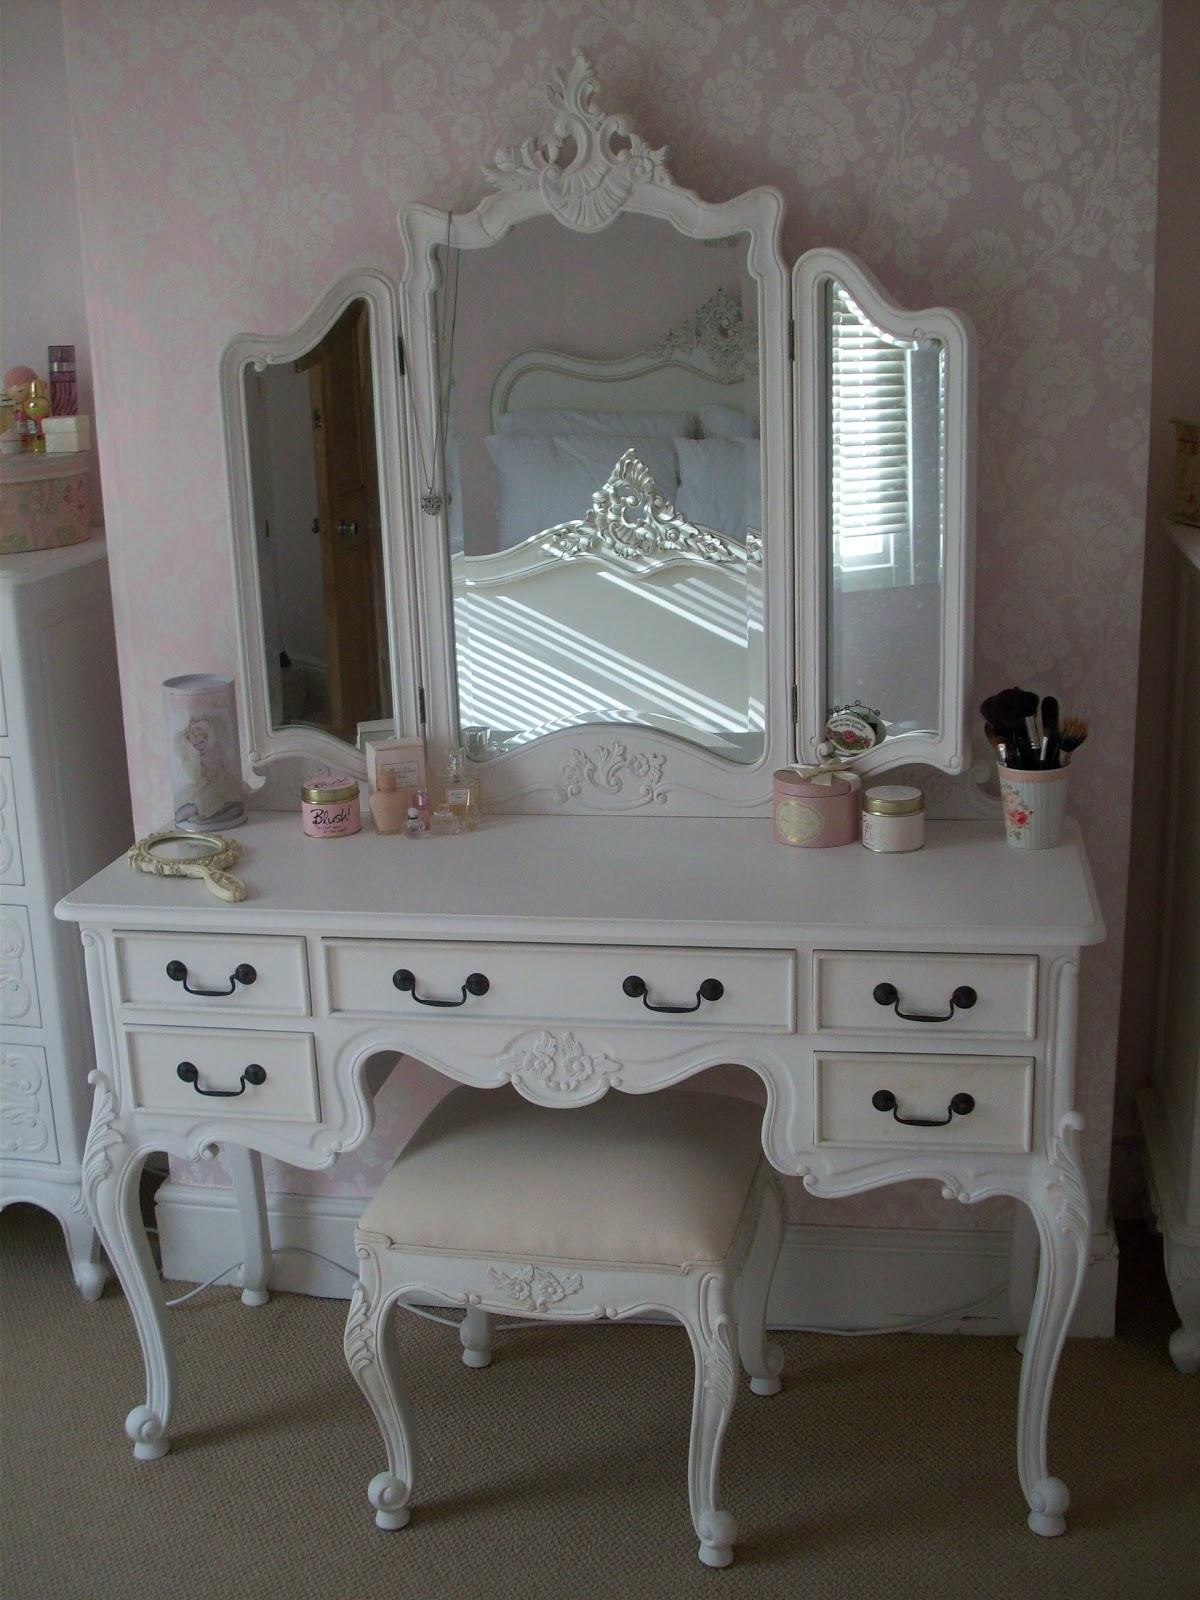 Shabby Chic White Makeup Vanity Set With Plenty Drawers And Tri With Regard To White Shabby Chic Mirror Sale (View 14 of 20)